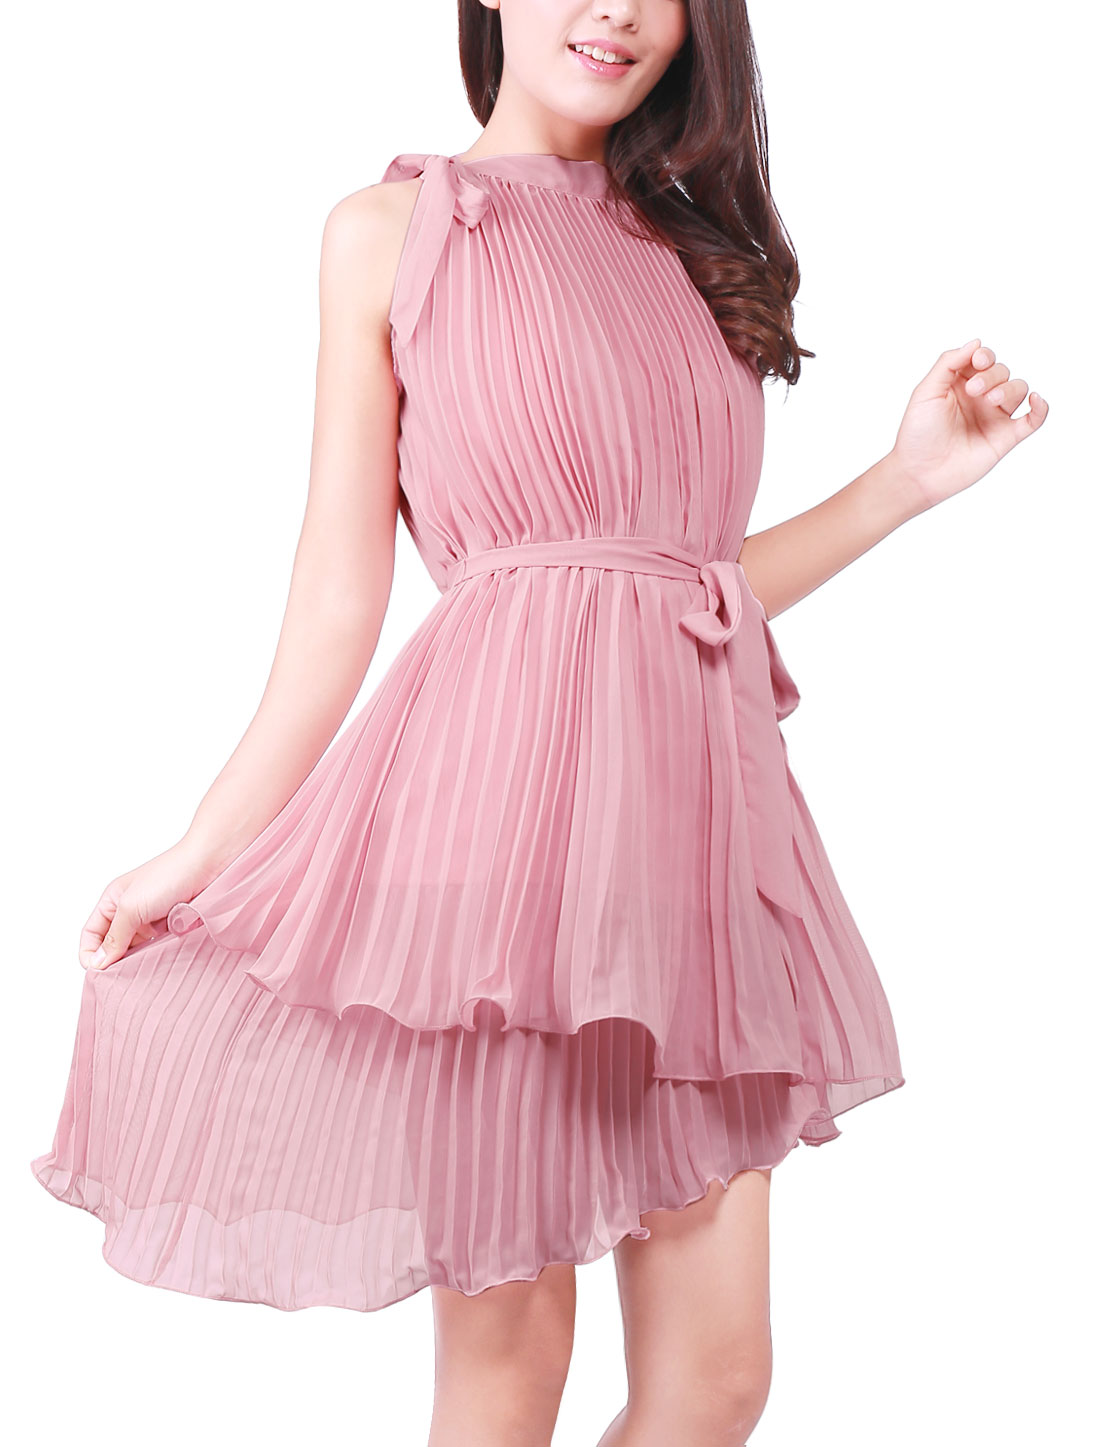 Women Stanr Collar Accordion Pleated Design Chiffon Dress Pale Pink M